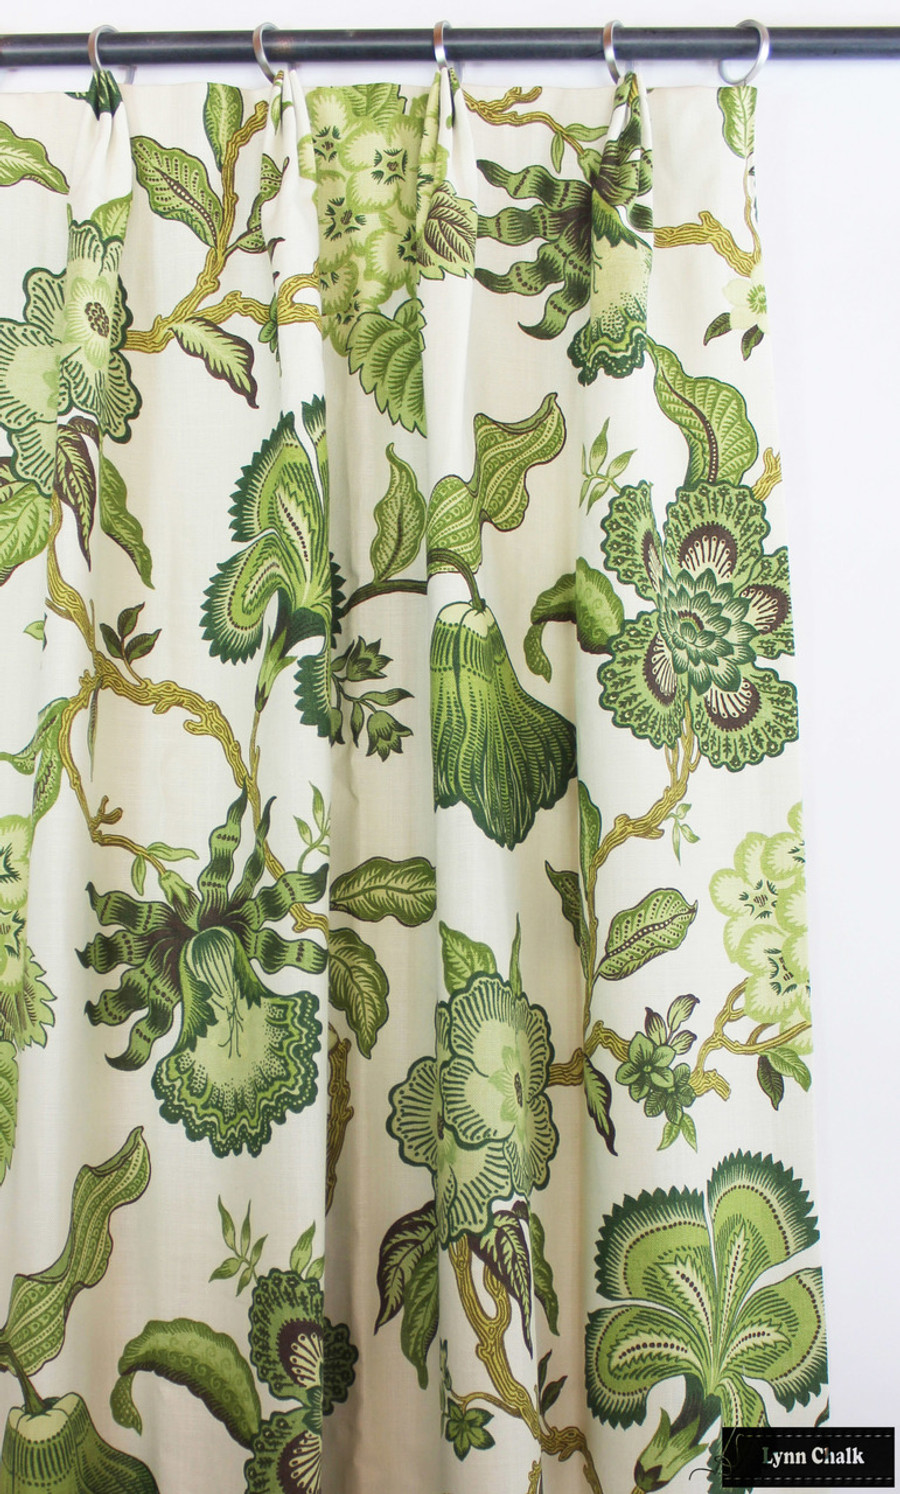 Schumacher Celerie Kemble Hothouse Flowers Custom Drapes (shown in Verdance-comes in other Colors)